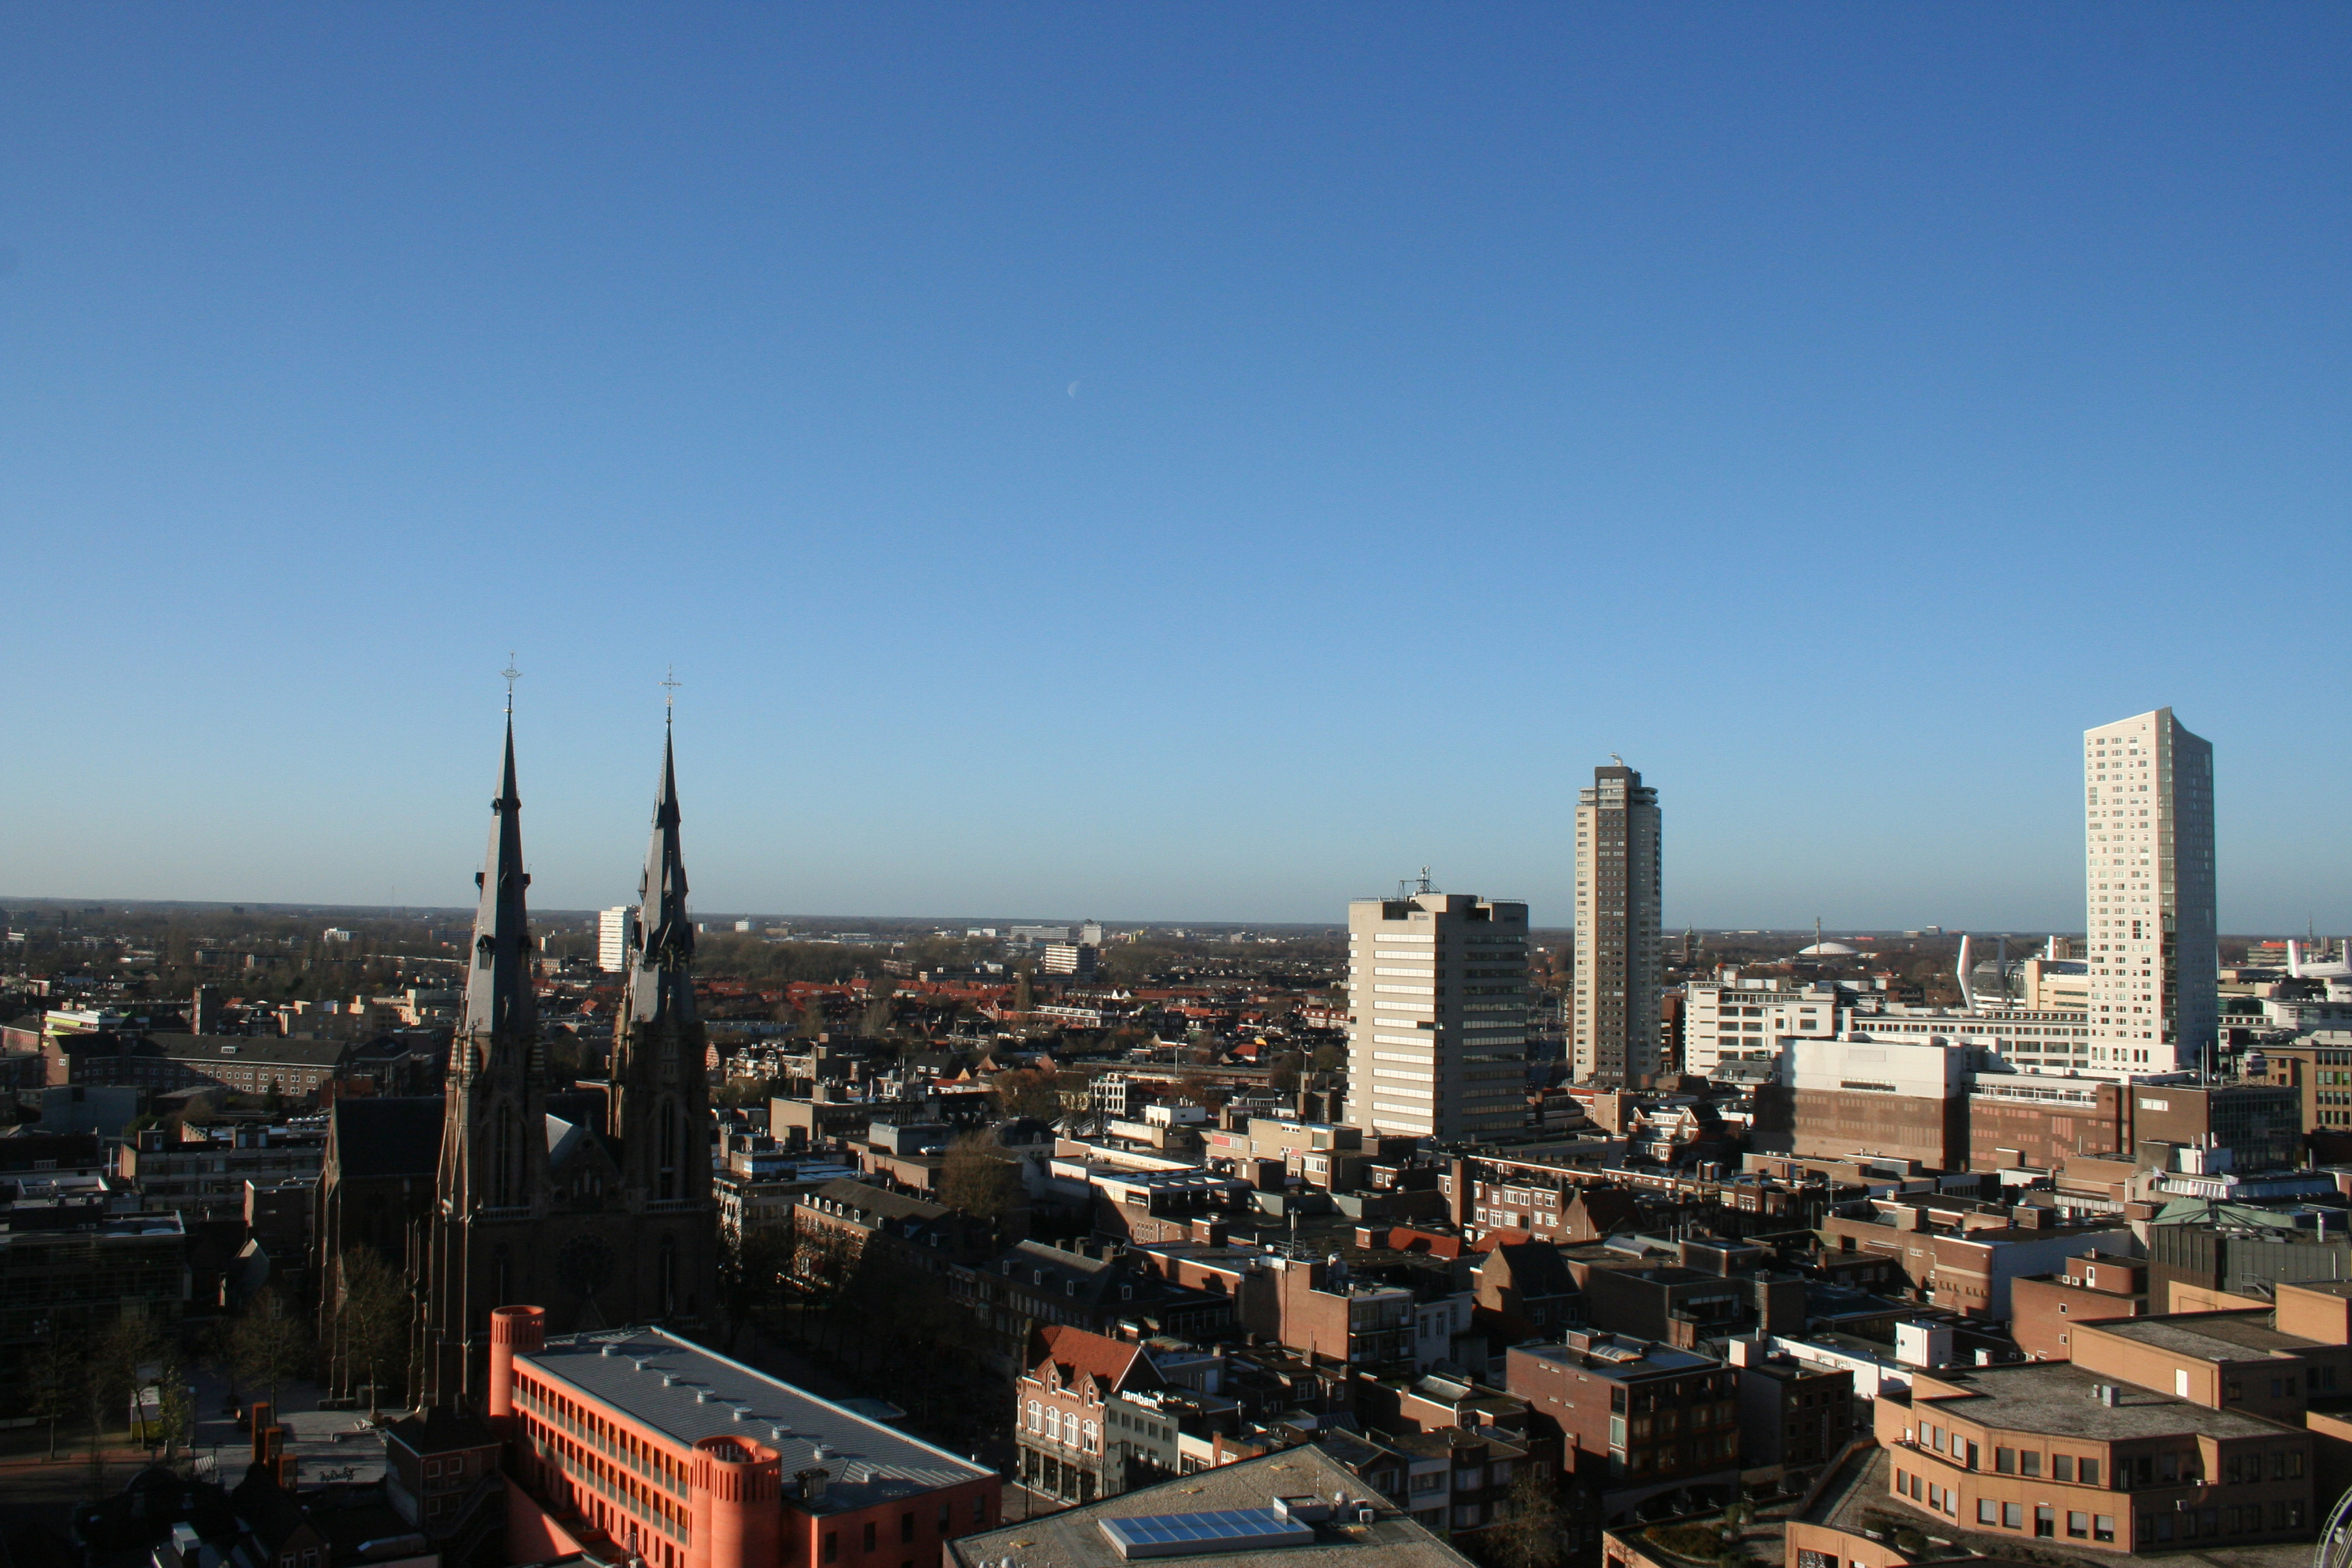 Eindhoven &#8211; Industrial, cosmopolitan and tech savvy